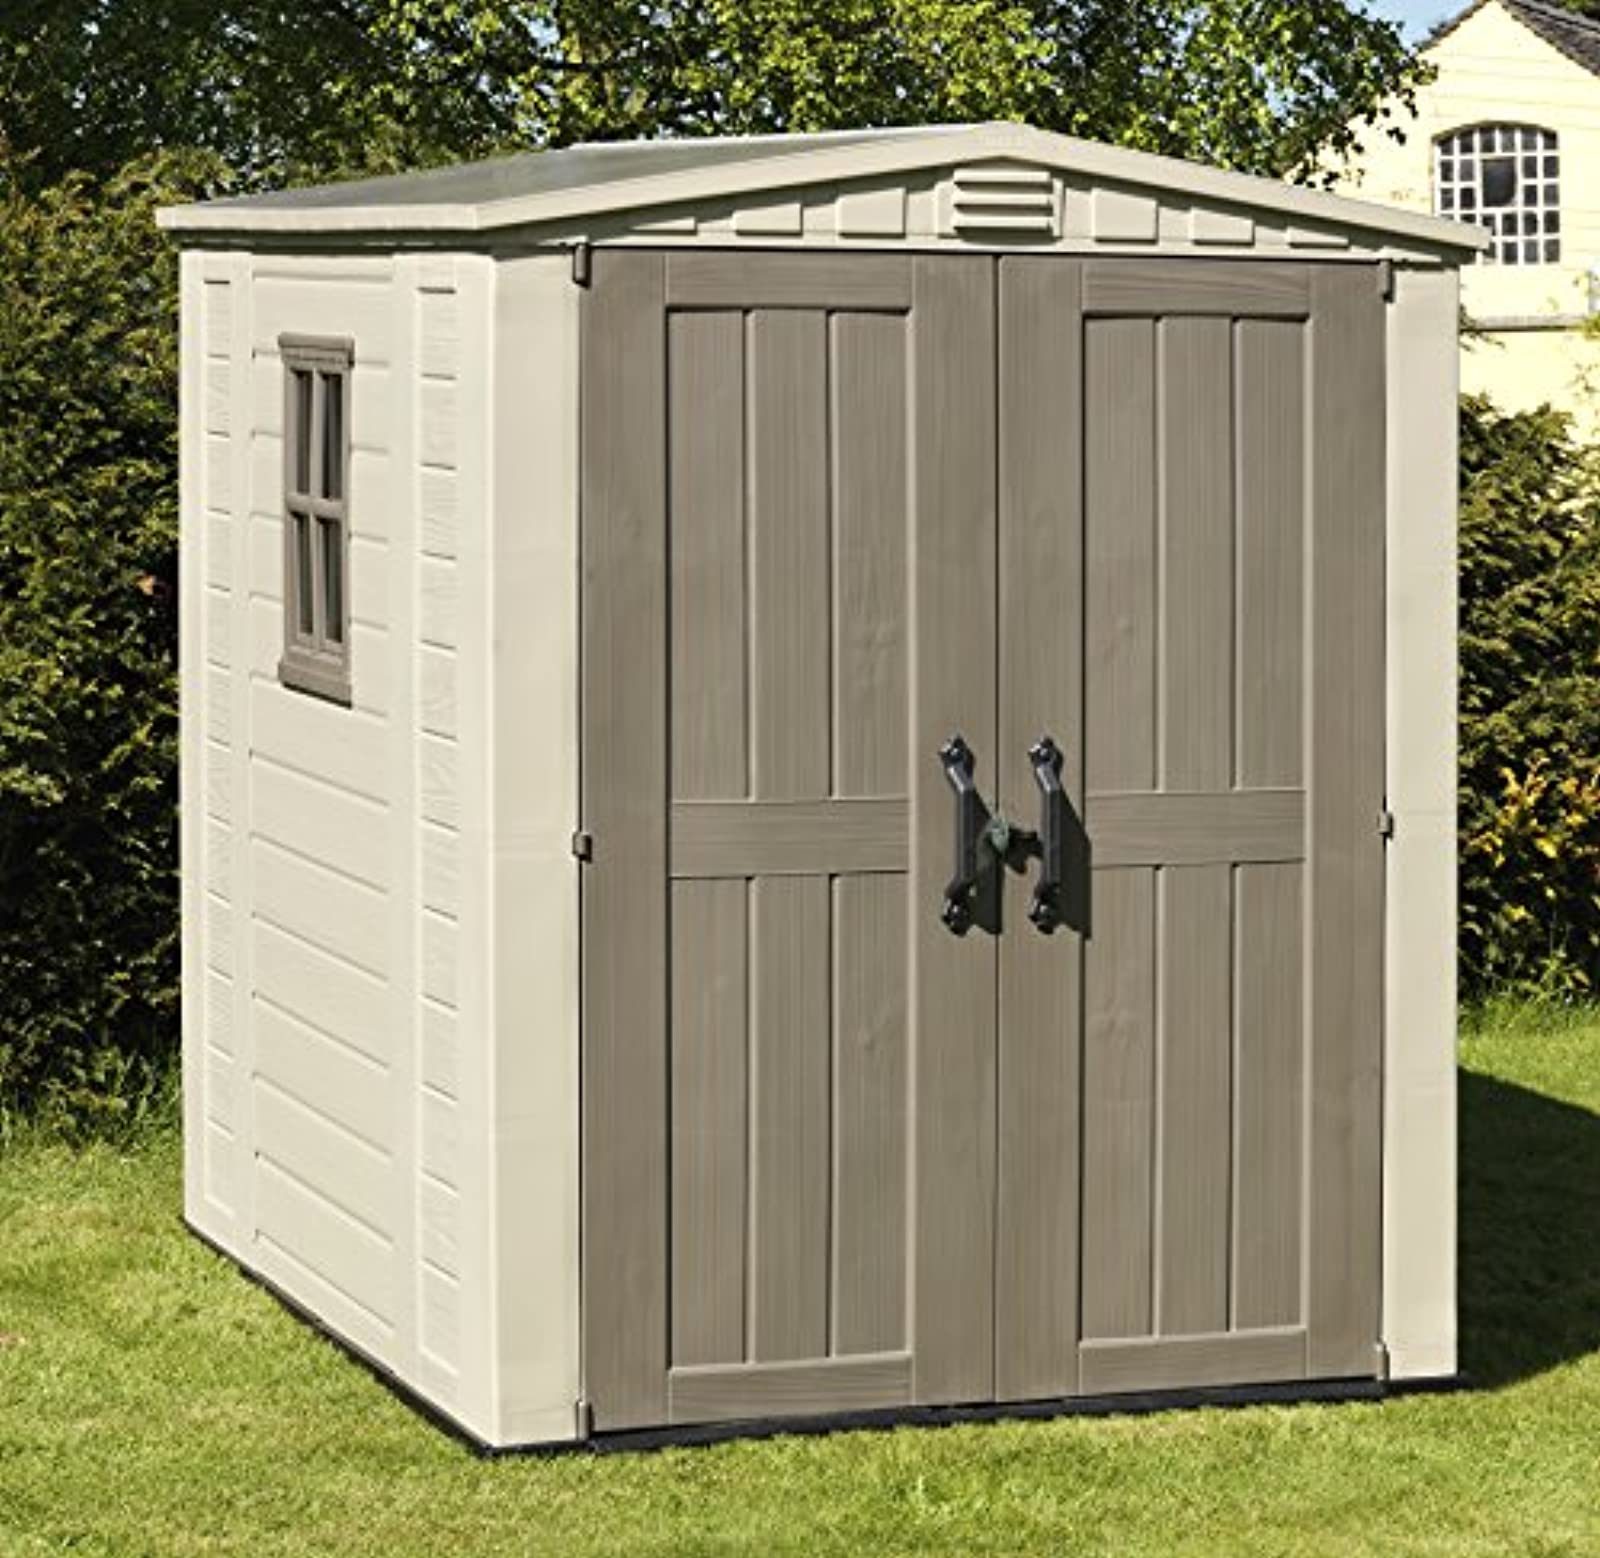 with lifetime outdoor sheds marvelous amazing garden metal storage organizer for shed design decor